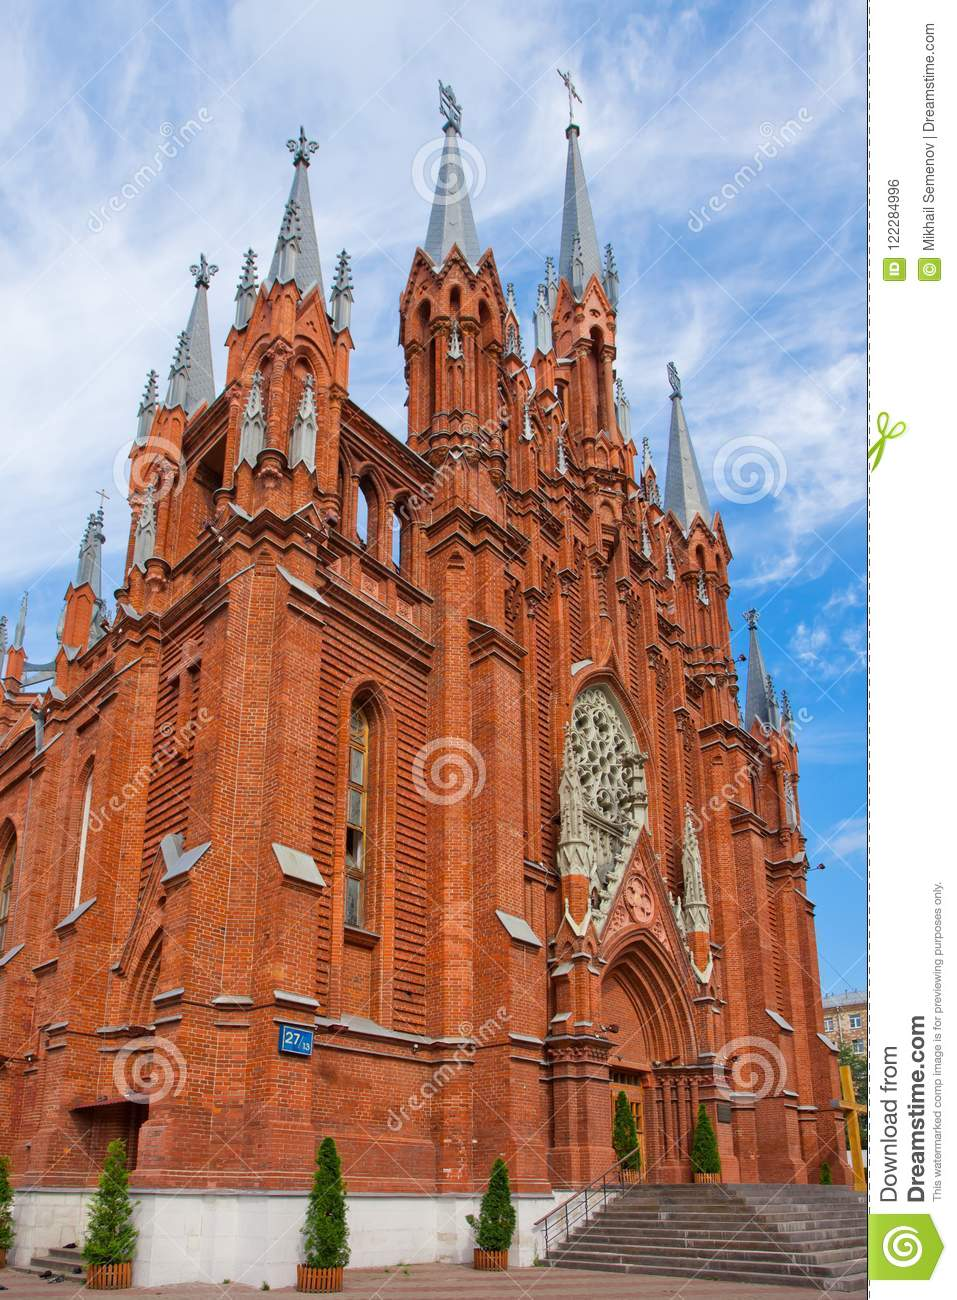 The Facade Of The Gothic Cathedral On The Side Stock Photo Image